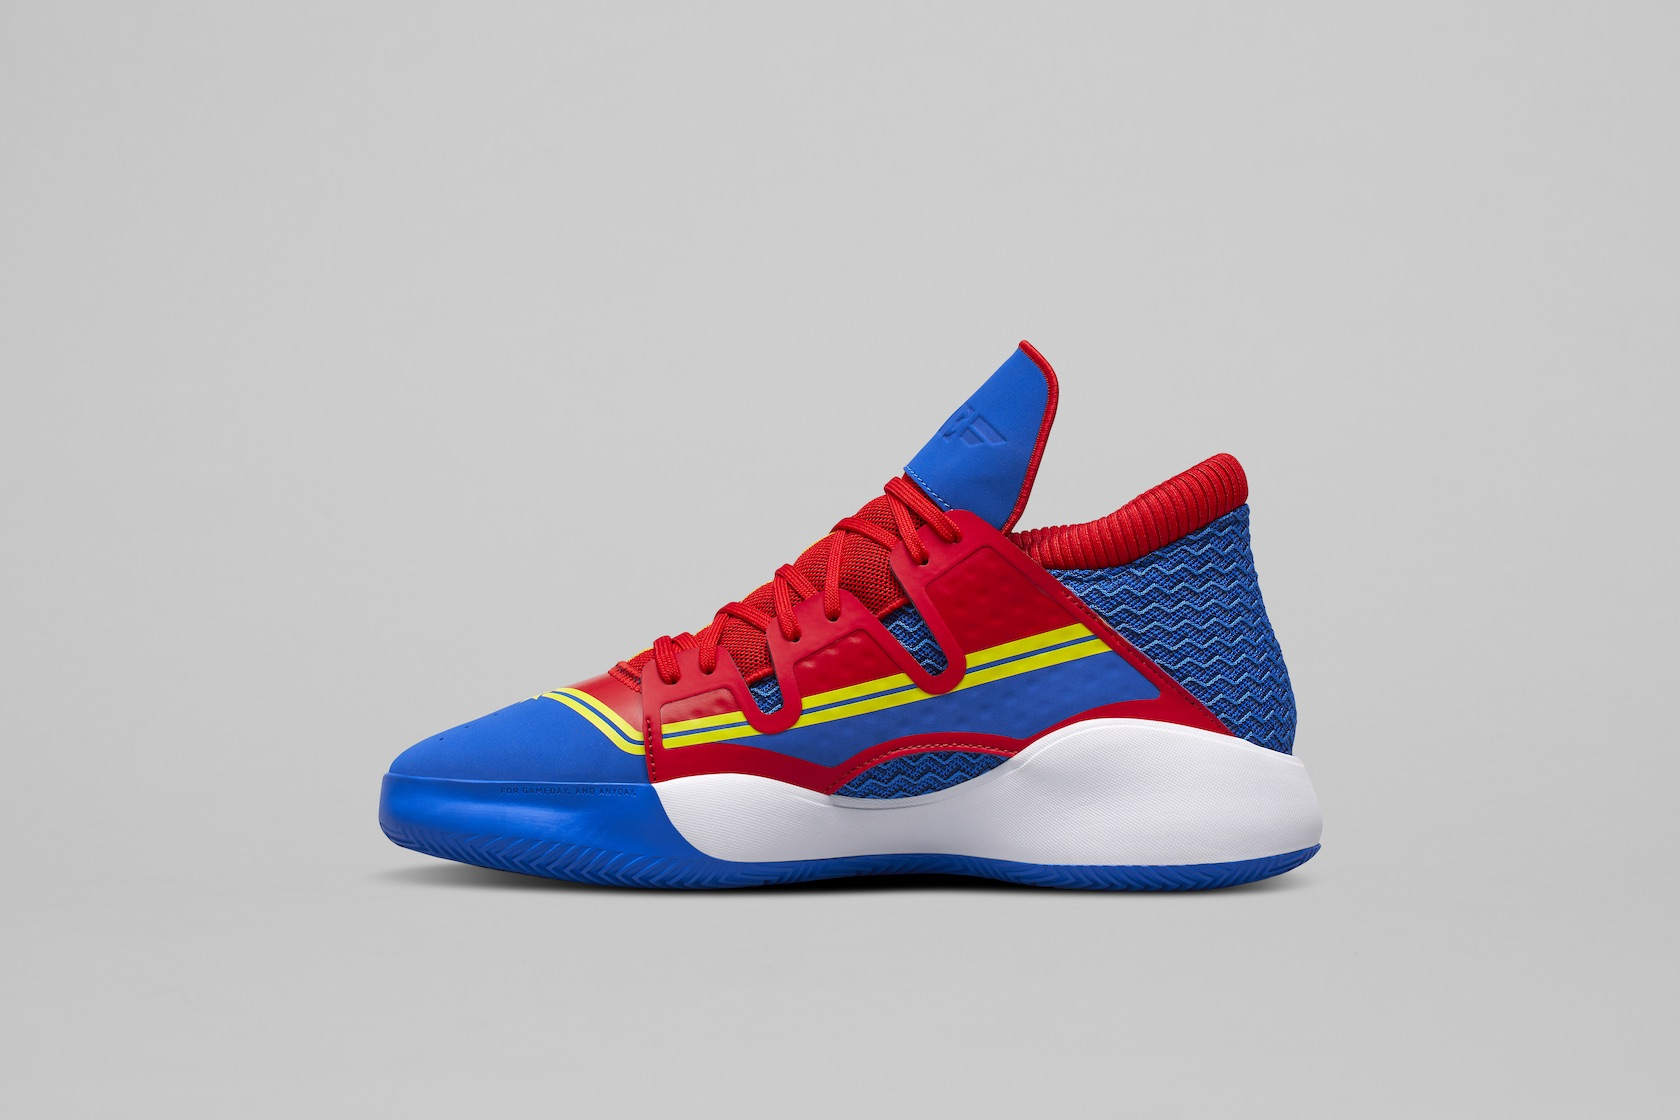 4457c4e4 Marvel-inspired Adidas shoes coming in April and include Iron Man ...